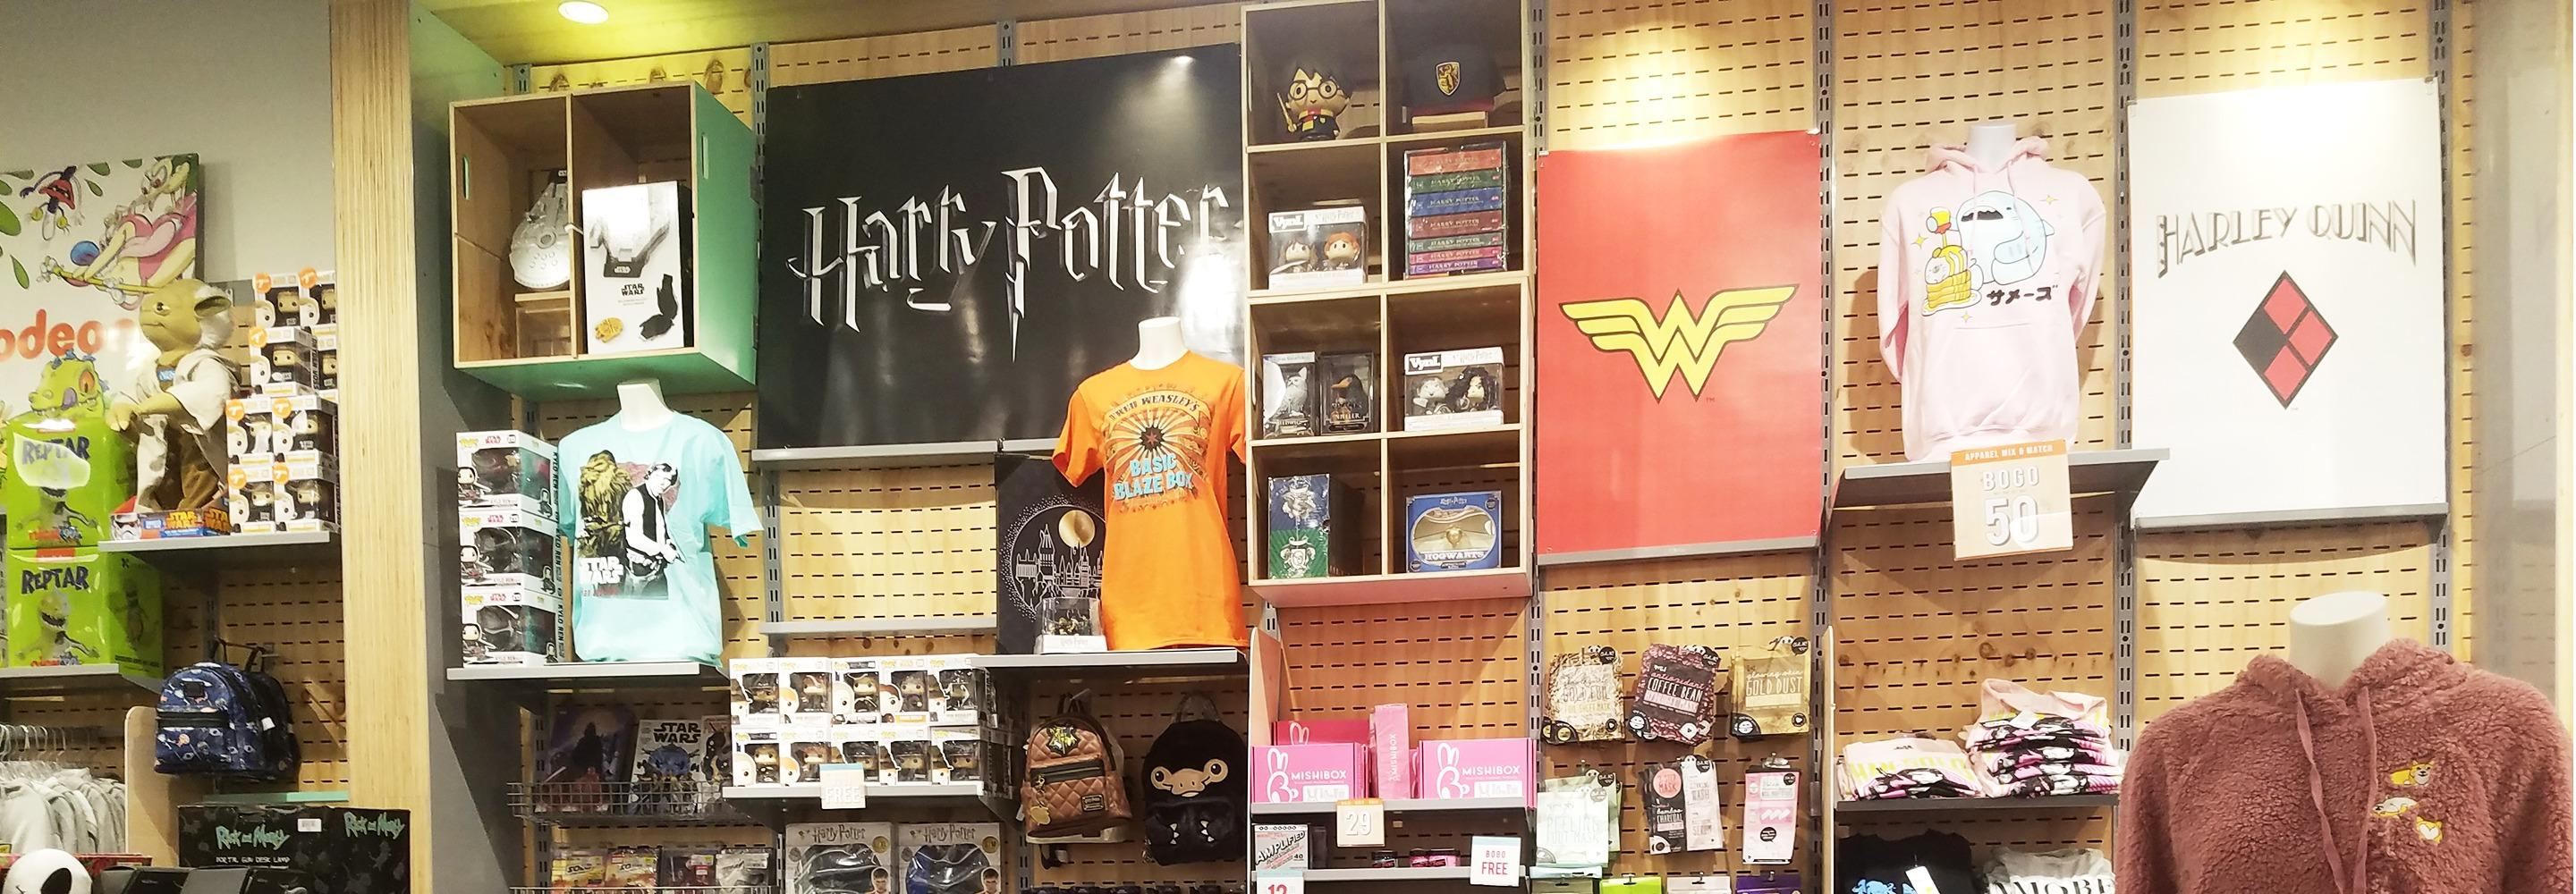 Pop Culture wall featuring Harry Potter and Wonder Woman in FYE